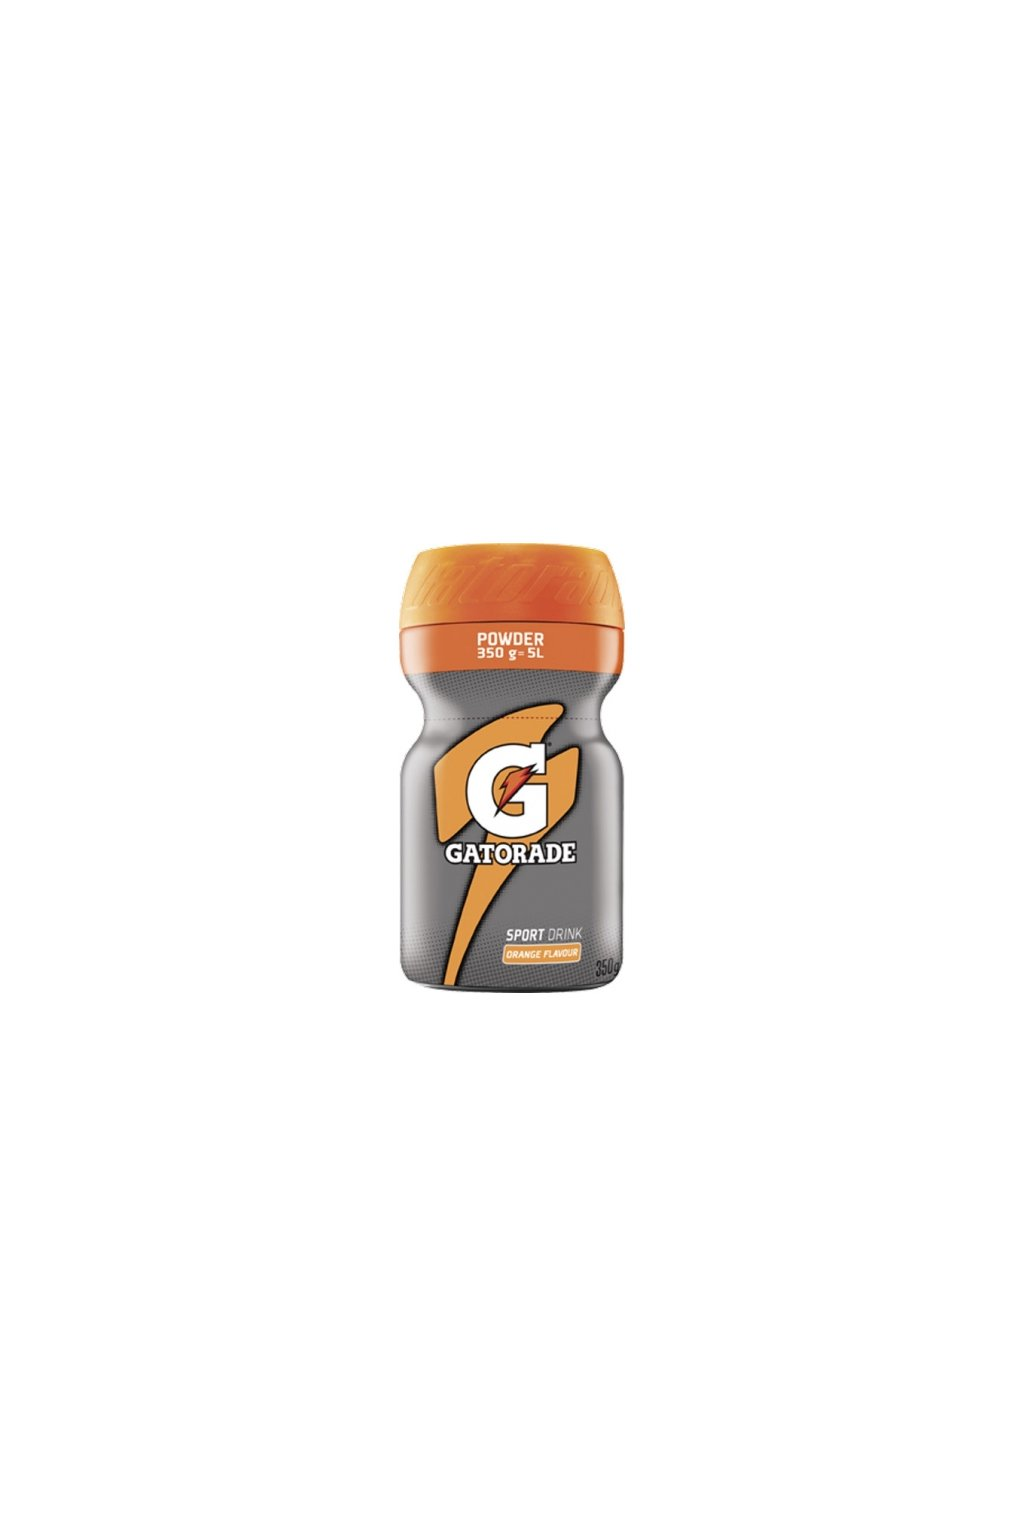 gatorade 760418900 powder 350g orange 0